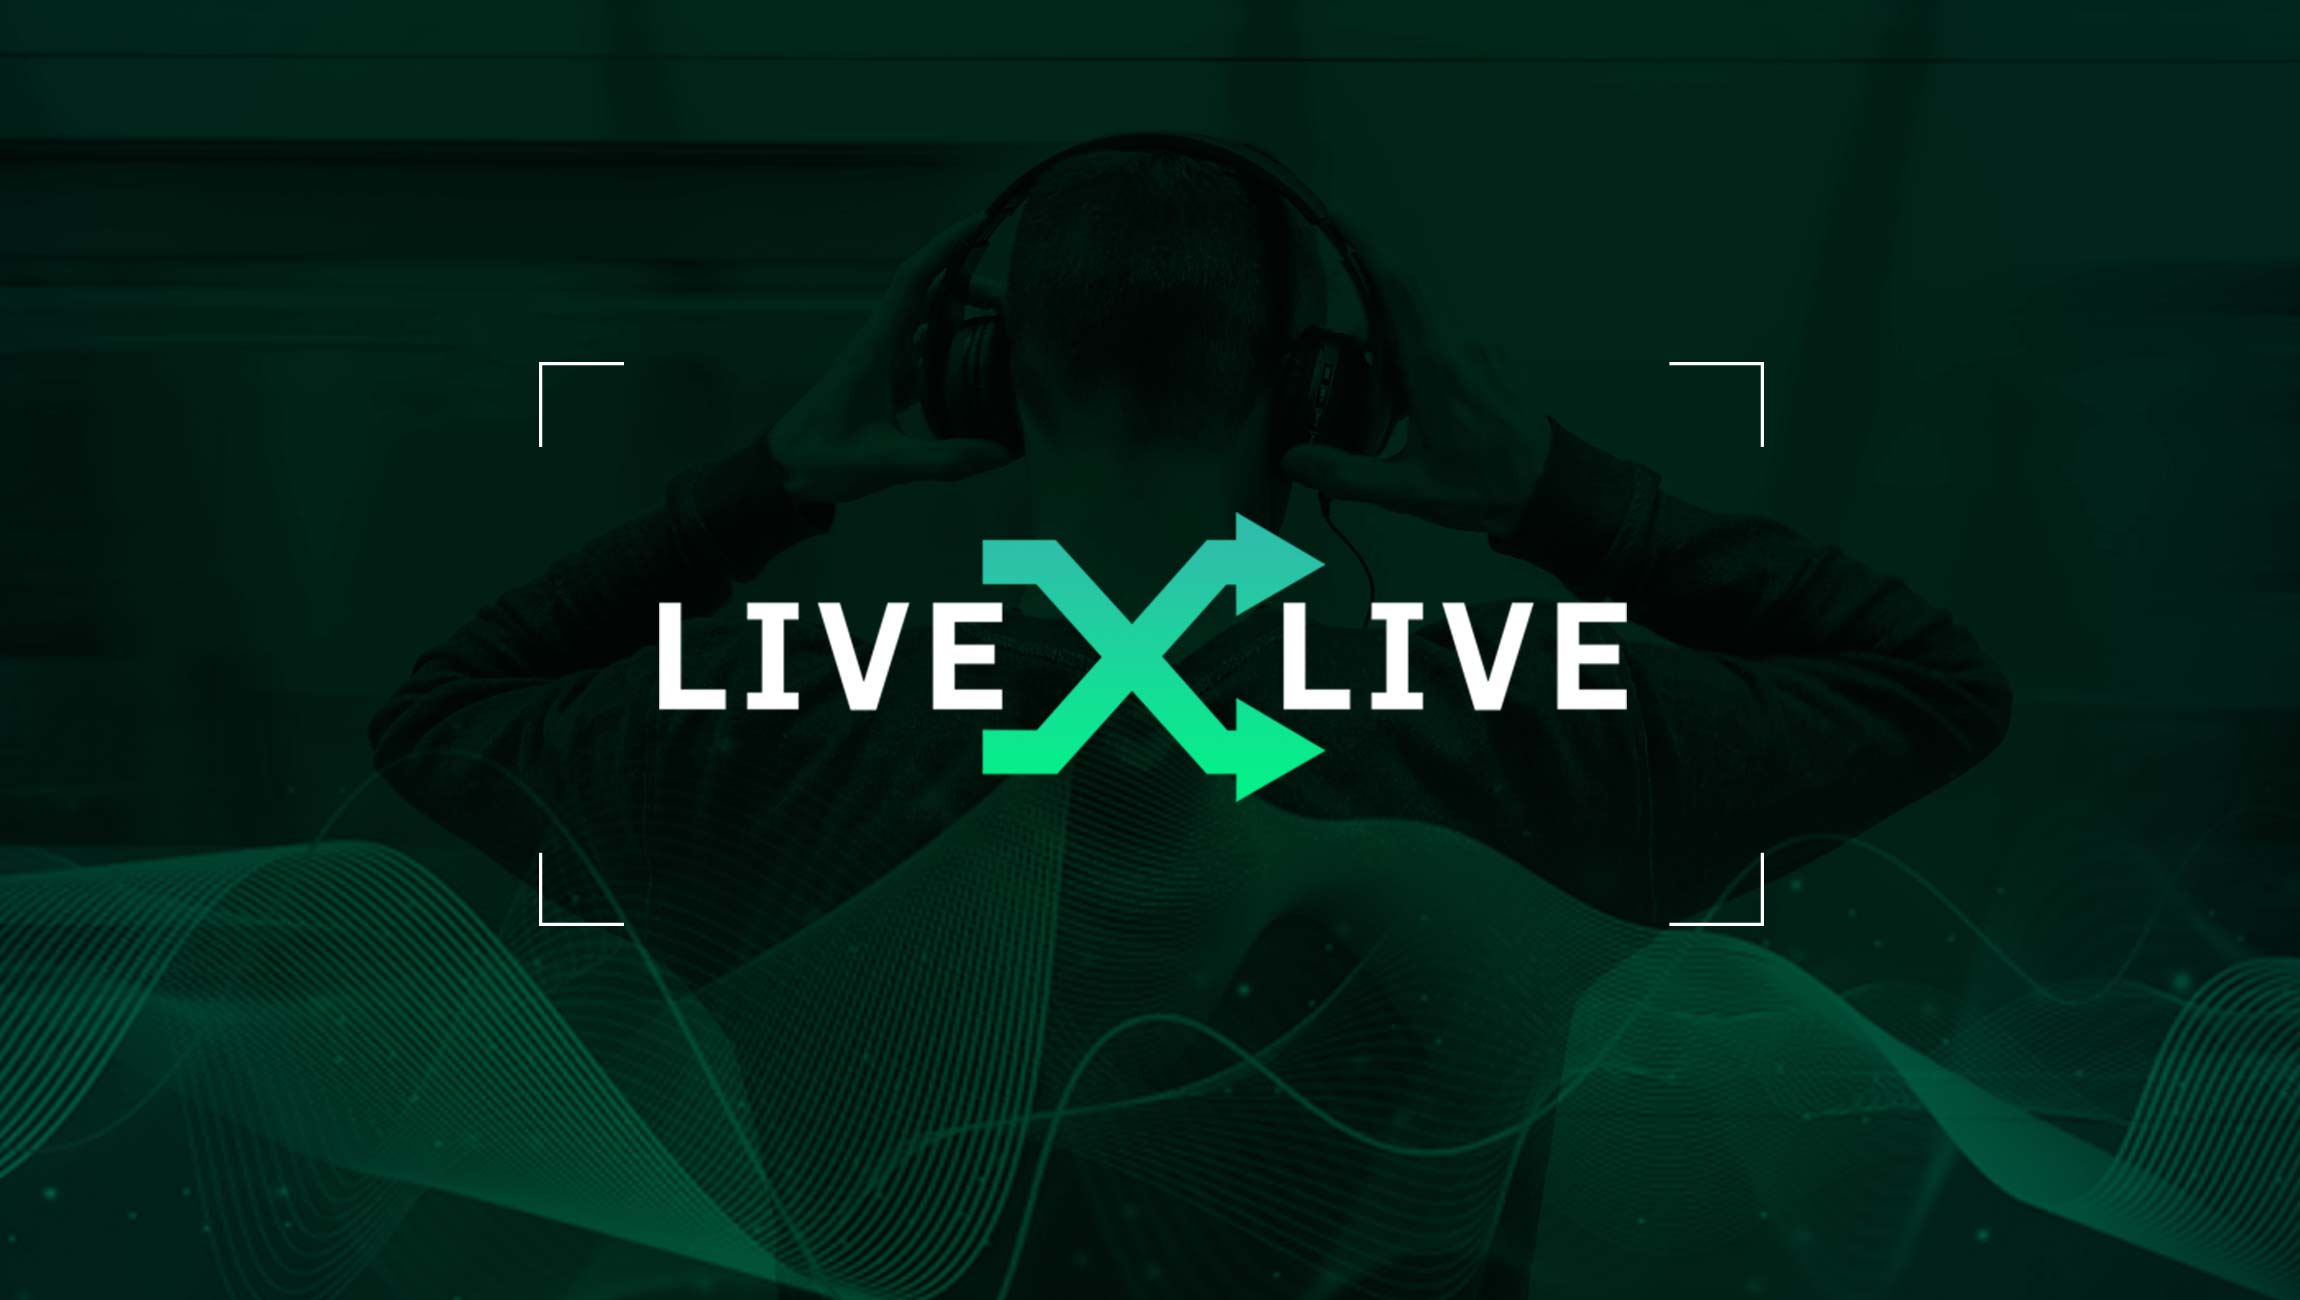 LiveXLive-Acquires-React-Presents-a-Leading-Electronic-Dance-Music-Promoter-with-Nearly-15-Million-in-2019-Revenue